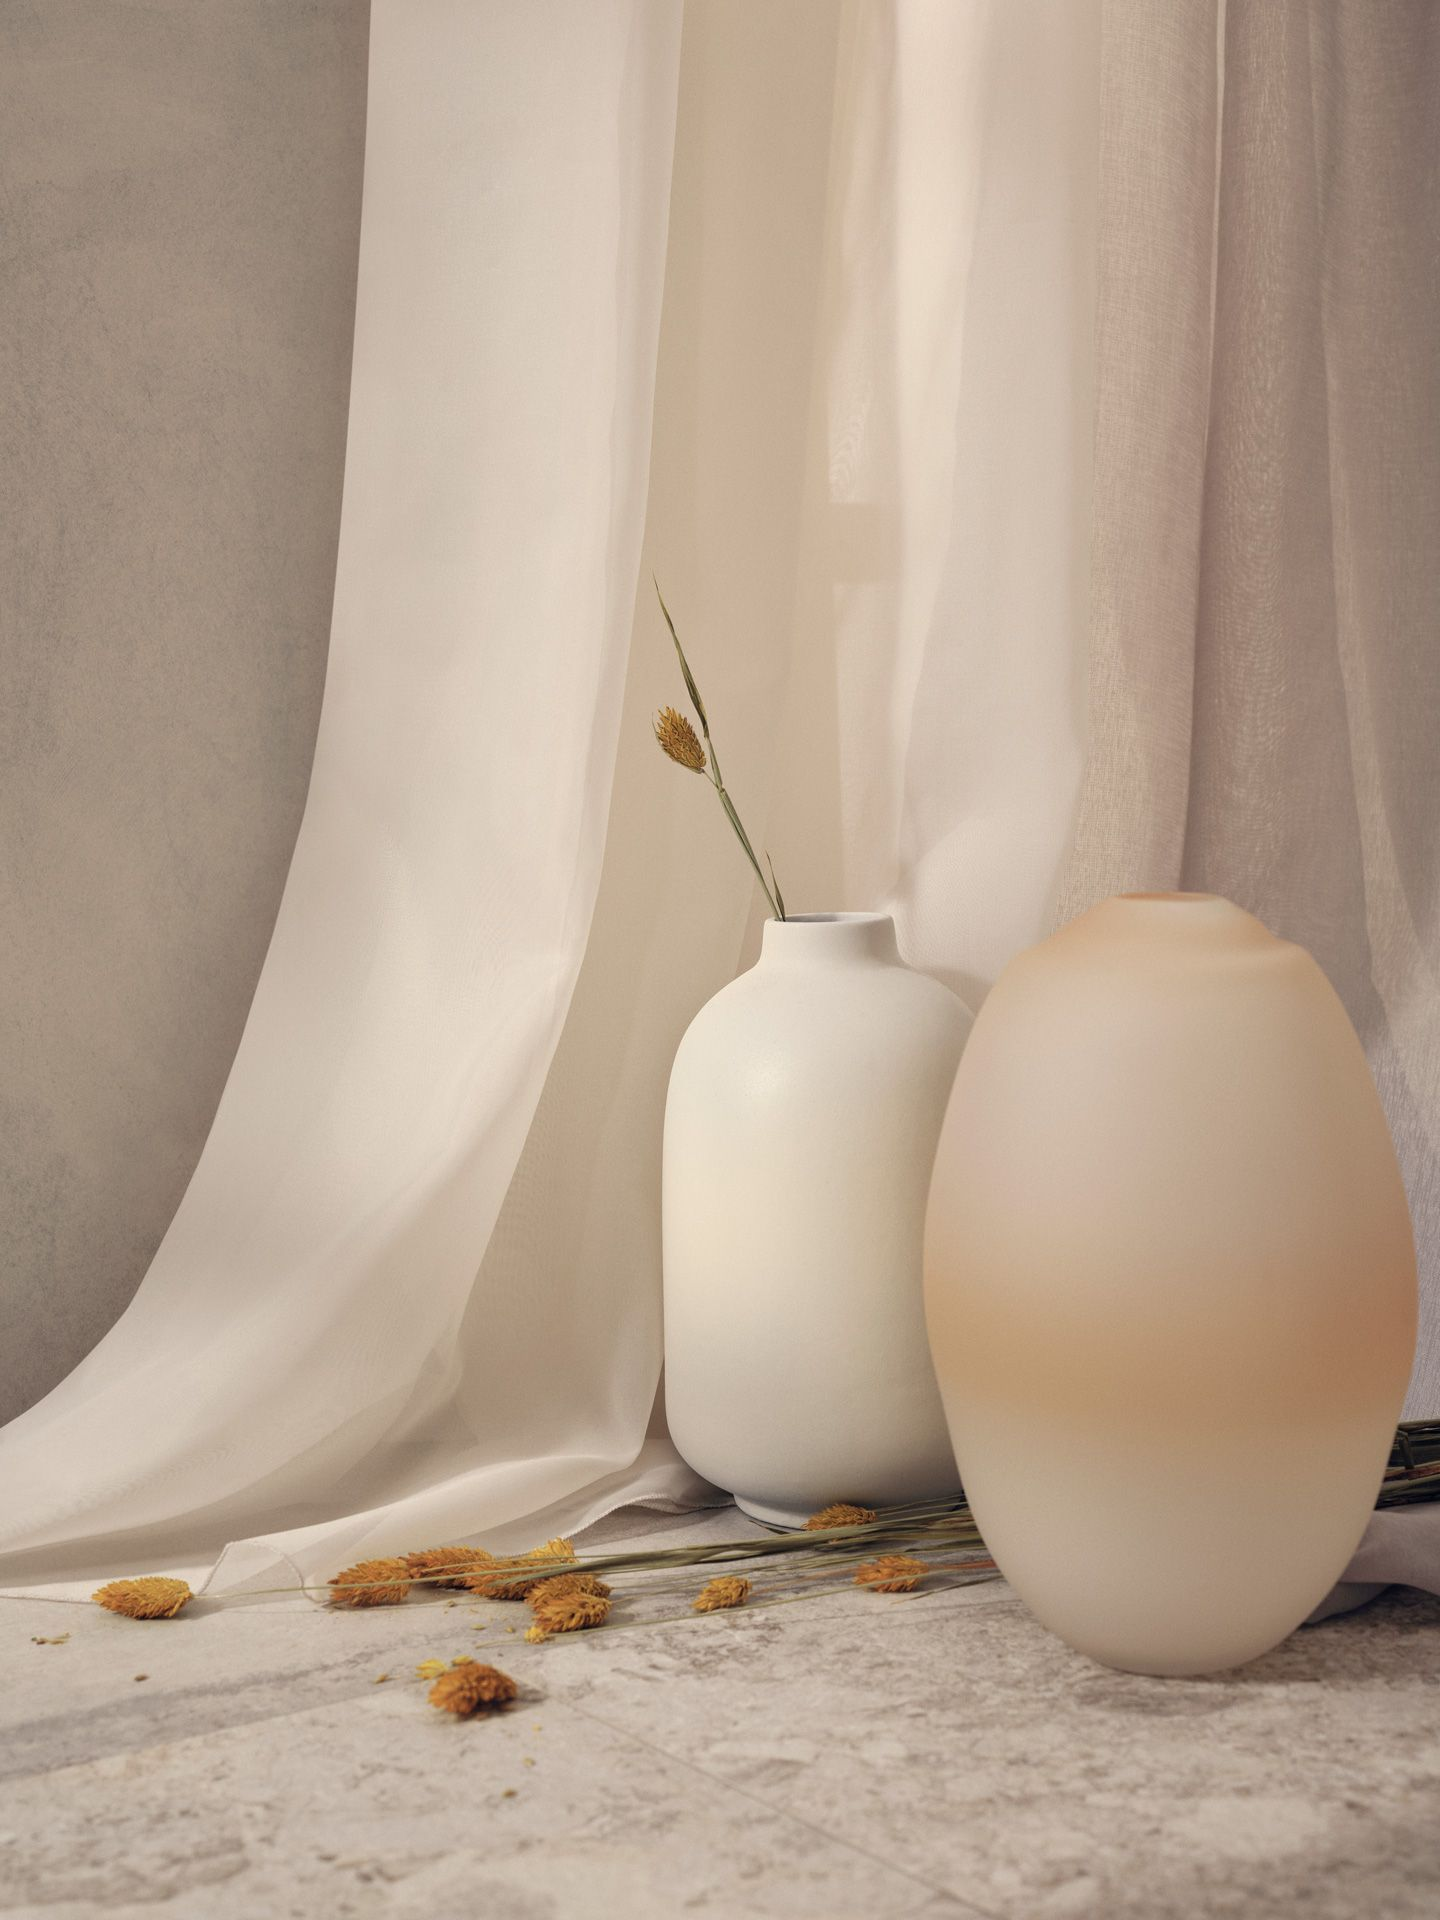 two big vases with single branch of dried plants in them in front of white linen curtains for Jean-Paul Fortin summer-spring collection photographed by Maxyme G Delisle with artistic direction, conception and set design by Studio TB